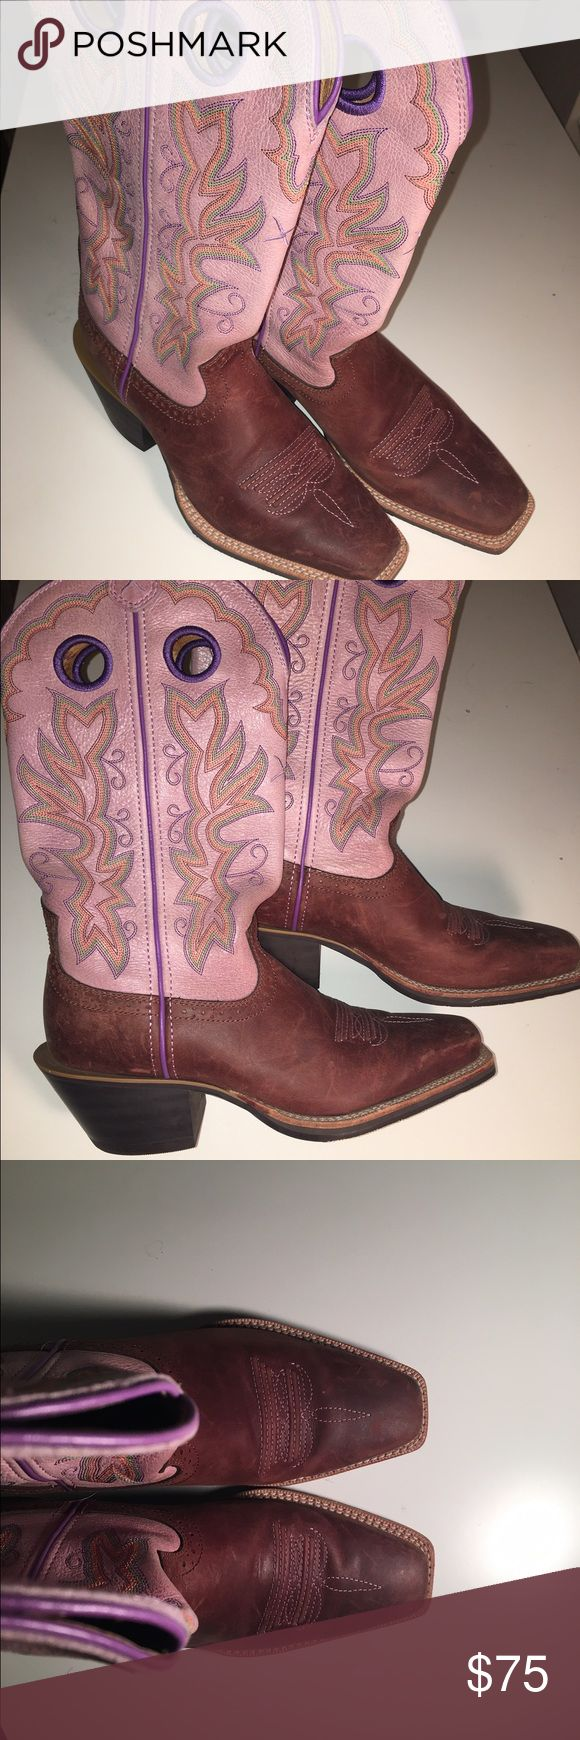 *MAKE AN OFFER*Twisted X cowboy boots size 6.5 Purple Twisted X cowboy boots size 6.5 twisted x Shoes Heeled Boots